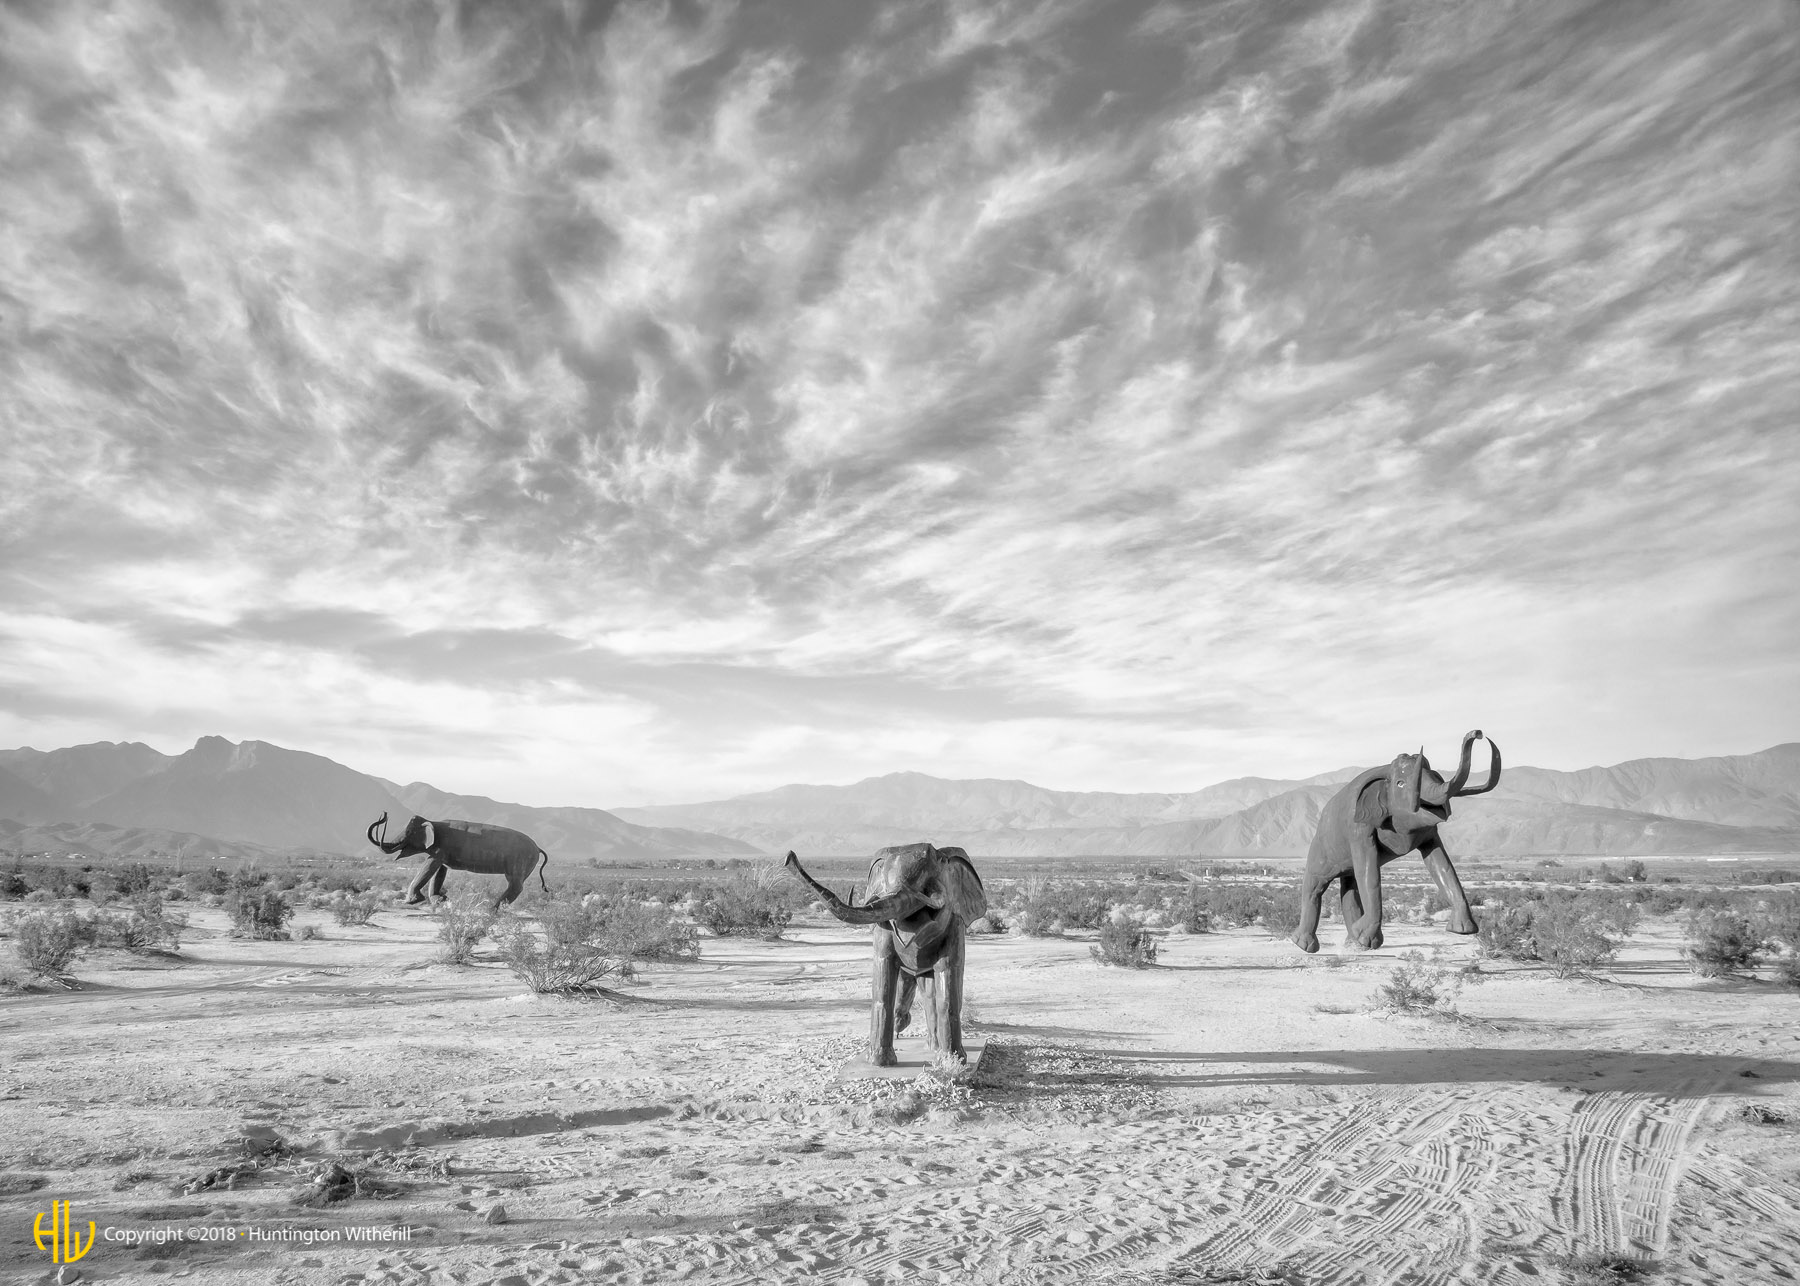 Dancing Woolly Mammoths, Borrego Springs, CA, 2014